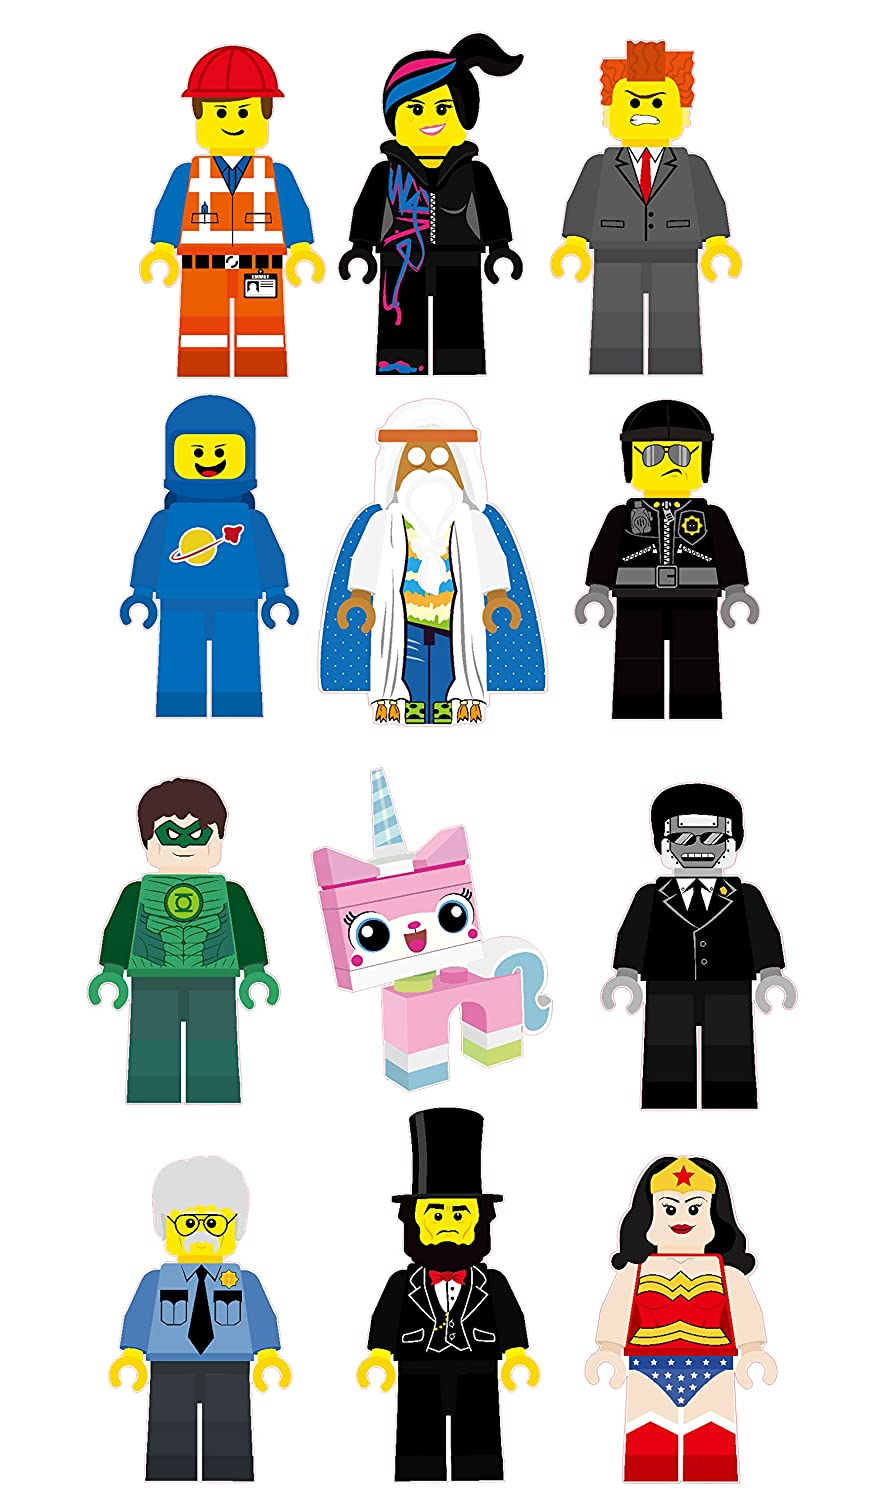 amazon com the lego movie characters removable wall stickers amazon com the lego movie characters removable wall stickers decal 12 piece set home kitchen